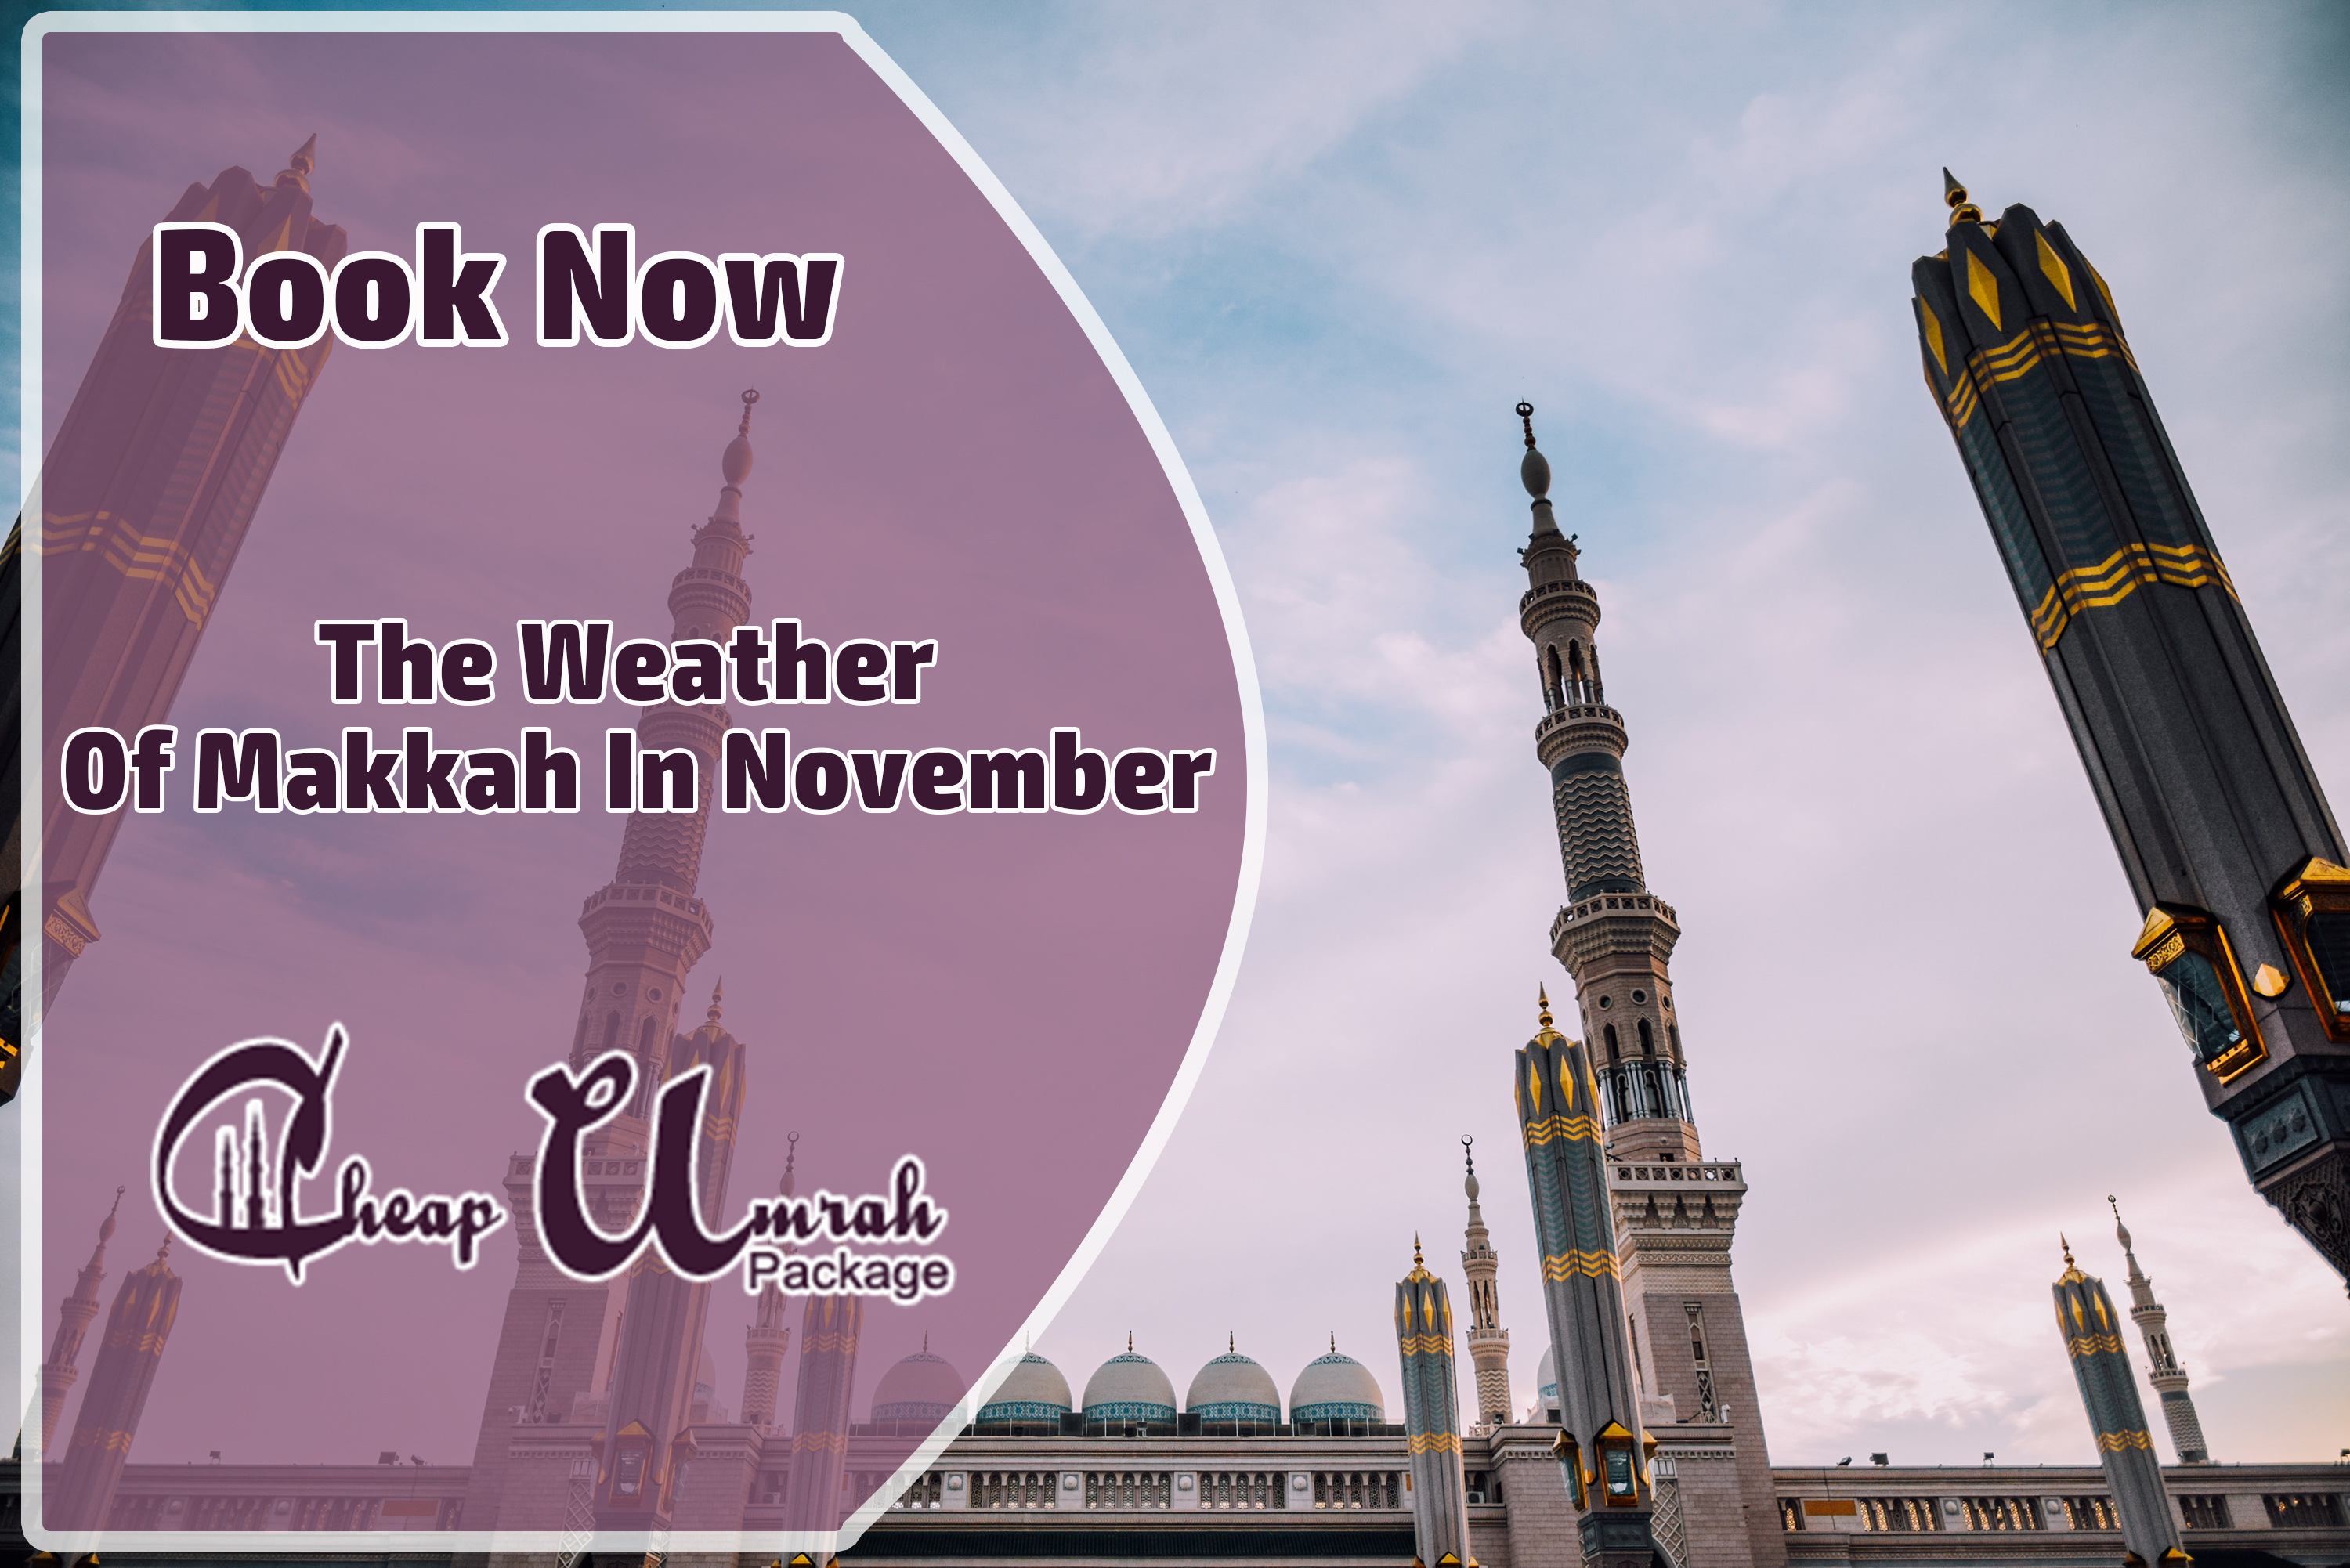 The-Weather-Of-Makkah-In-November